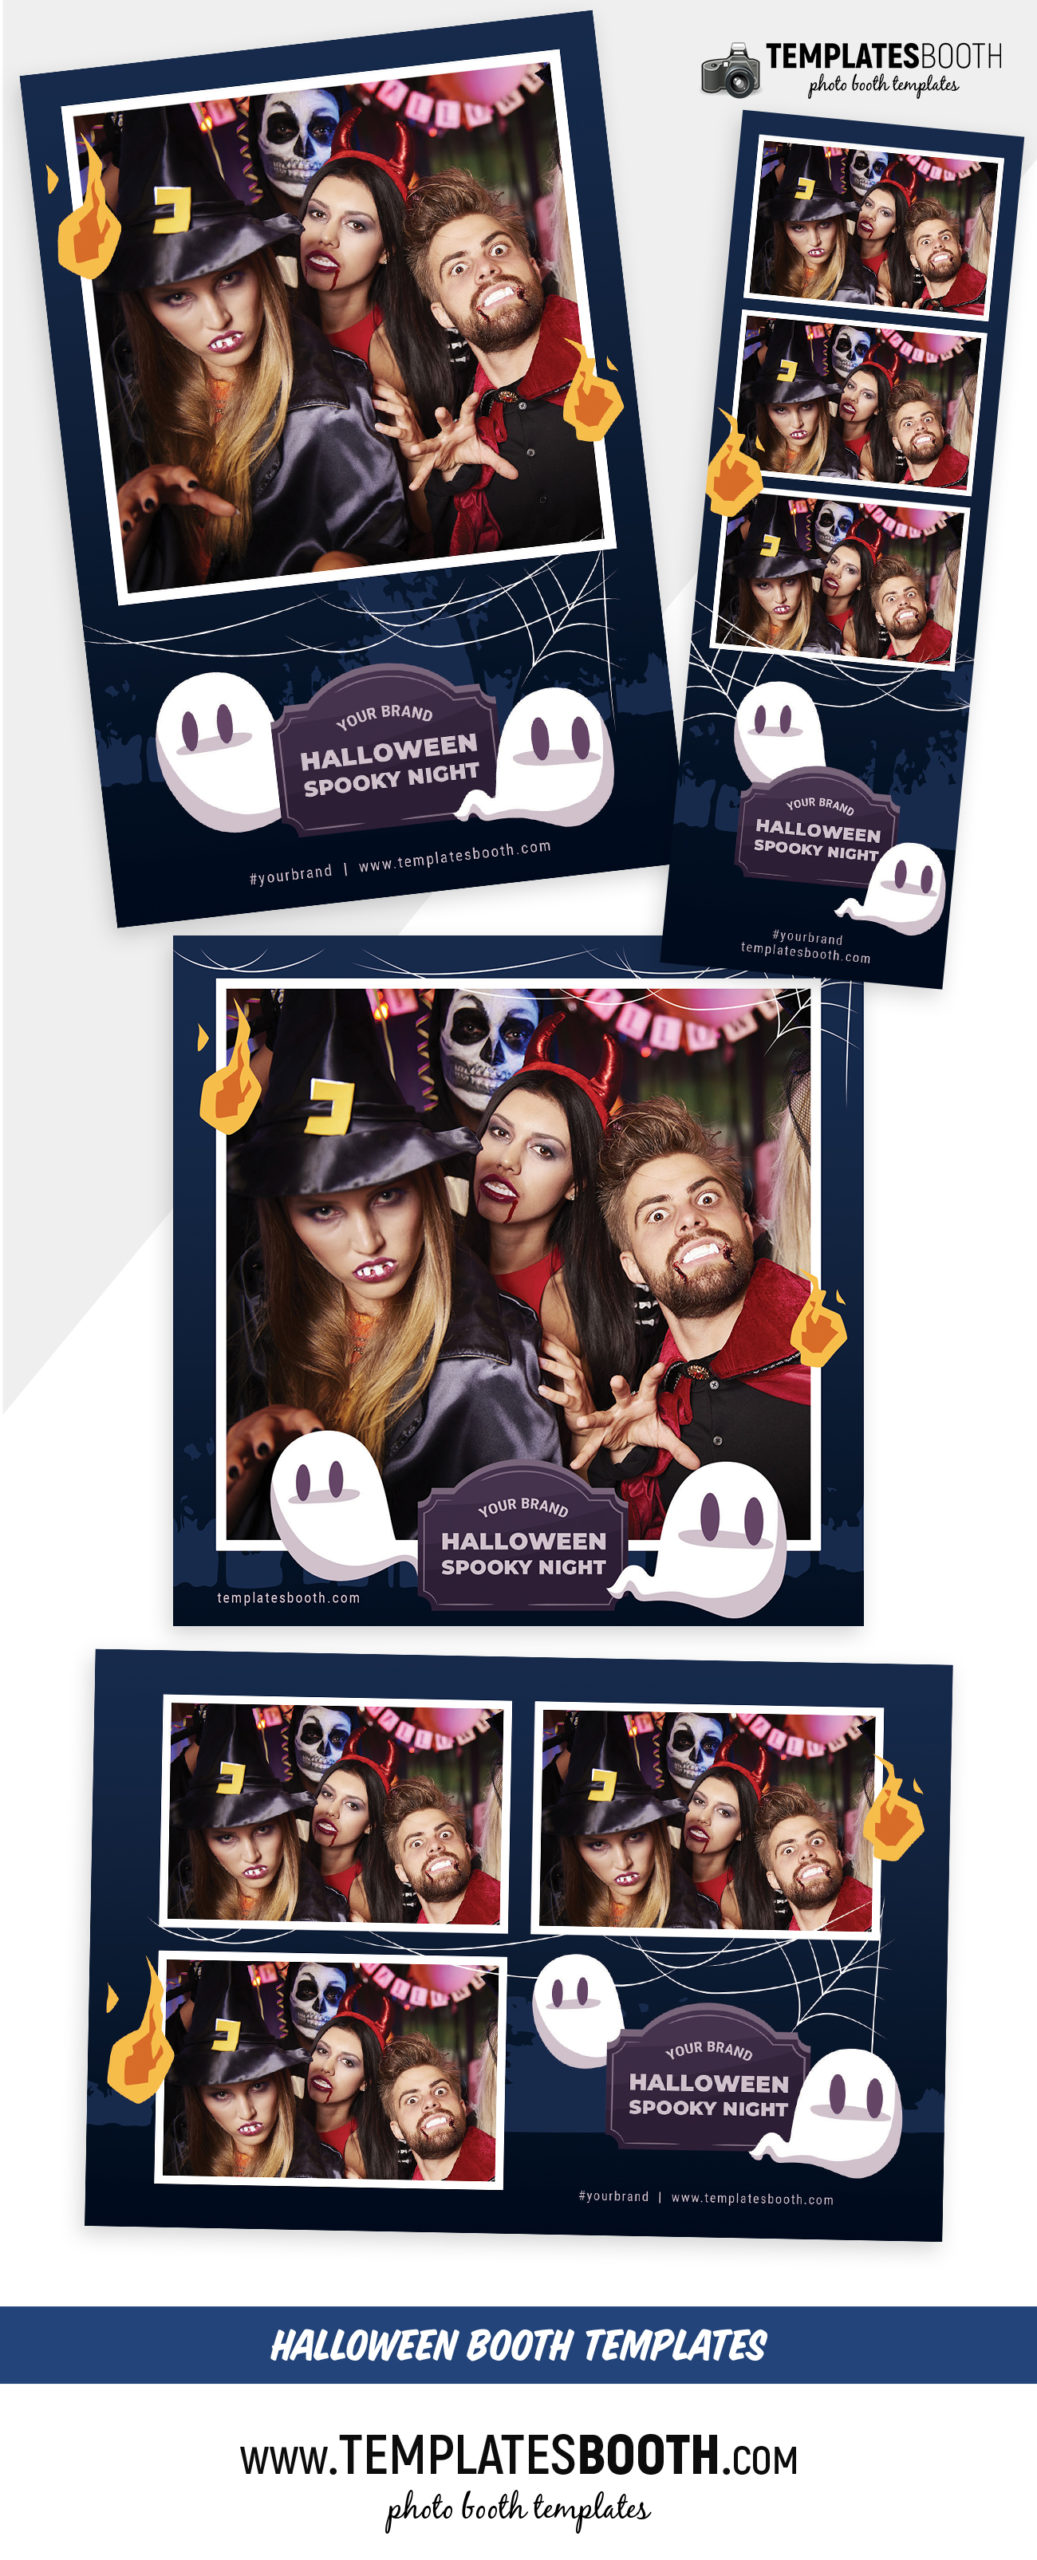 Halloween Spooky Night Photo Booth Template (full preview)